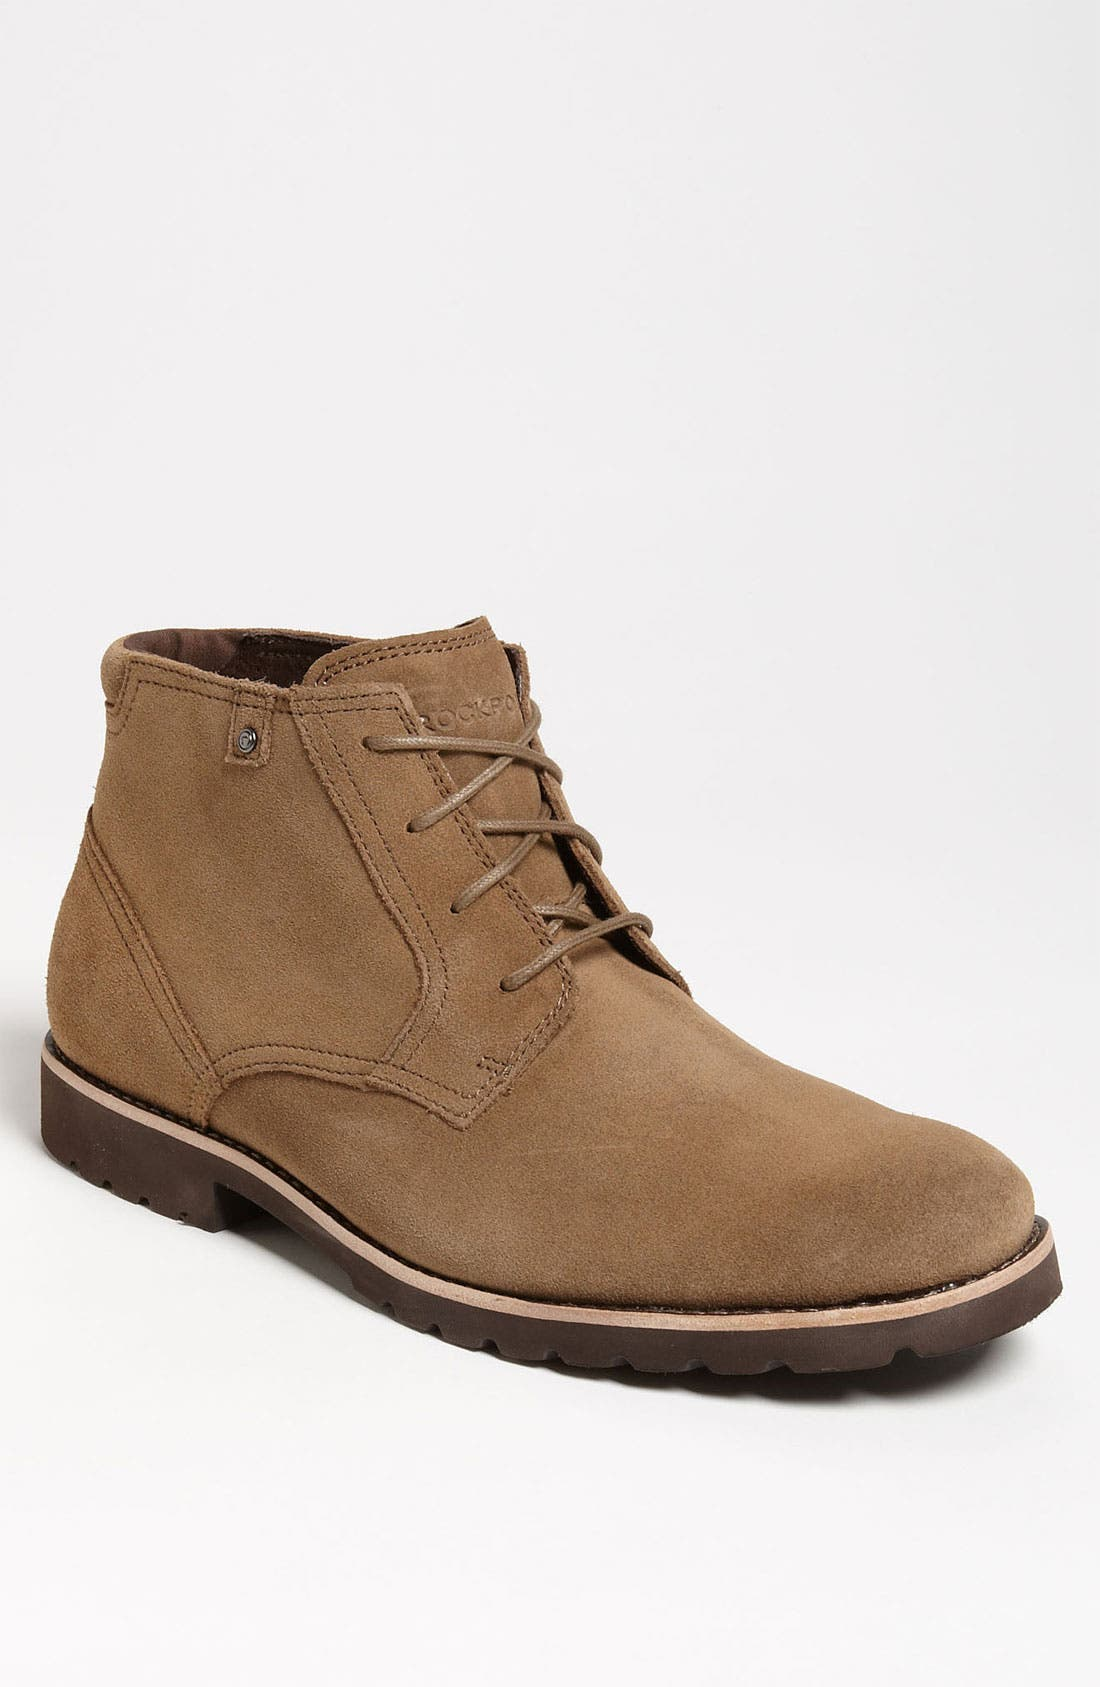 Main Image - Rockport® 'Ledge Hill' Chukka Boot